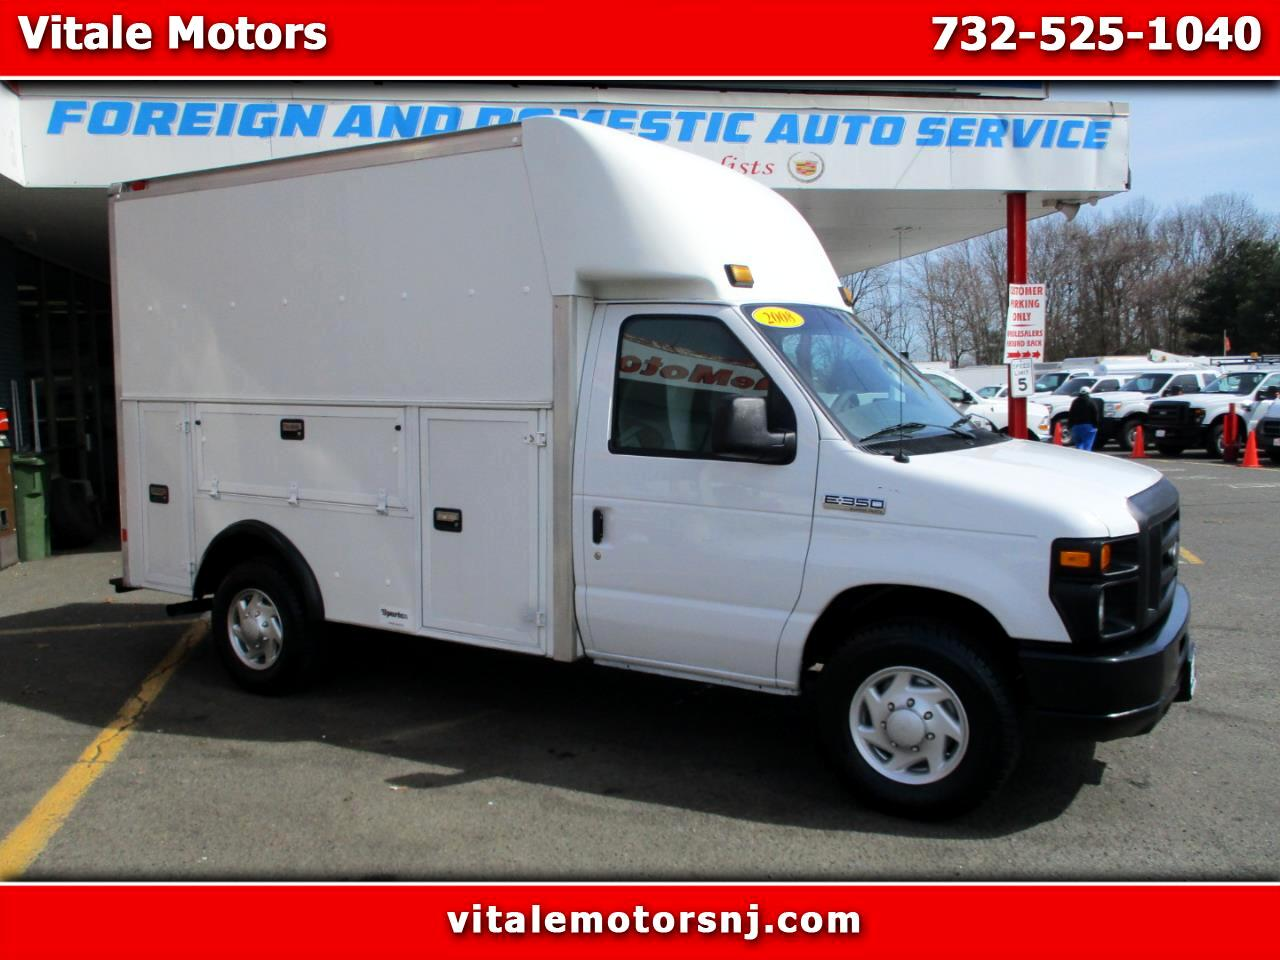 2008 Ford Econoline E-350 ENCLOSED UTILITY BODY